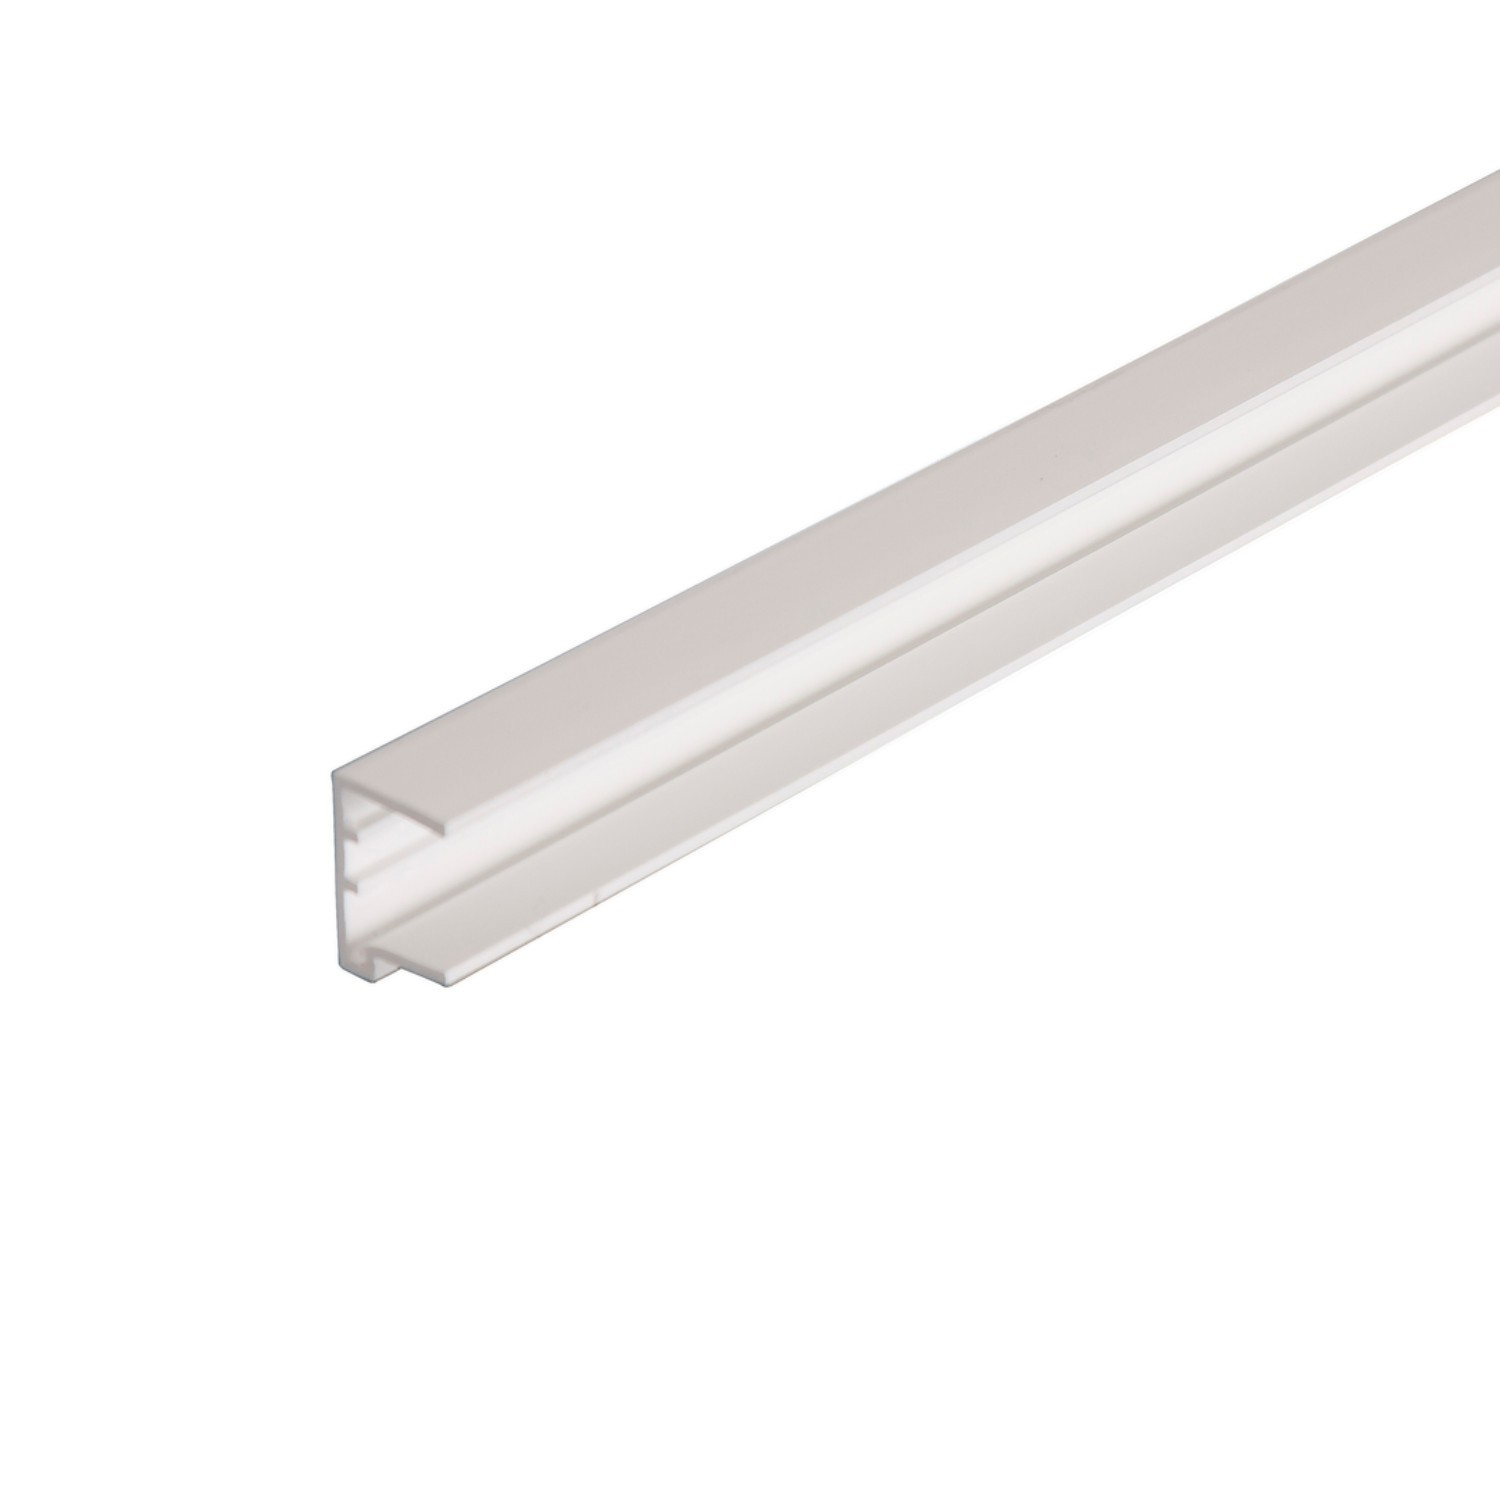 Sheet Closure for Polycarbonate 16mm x 2100mm